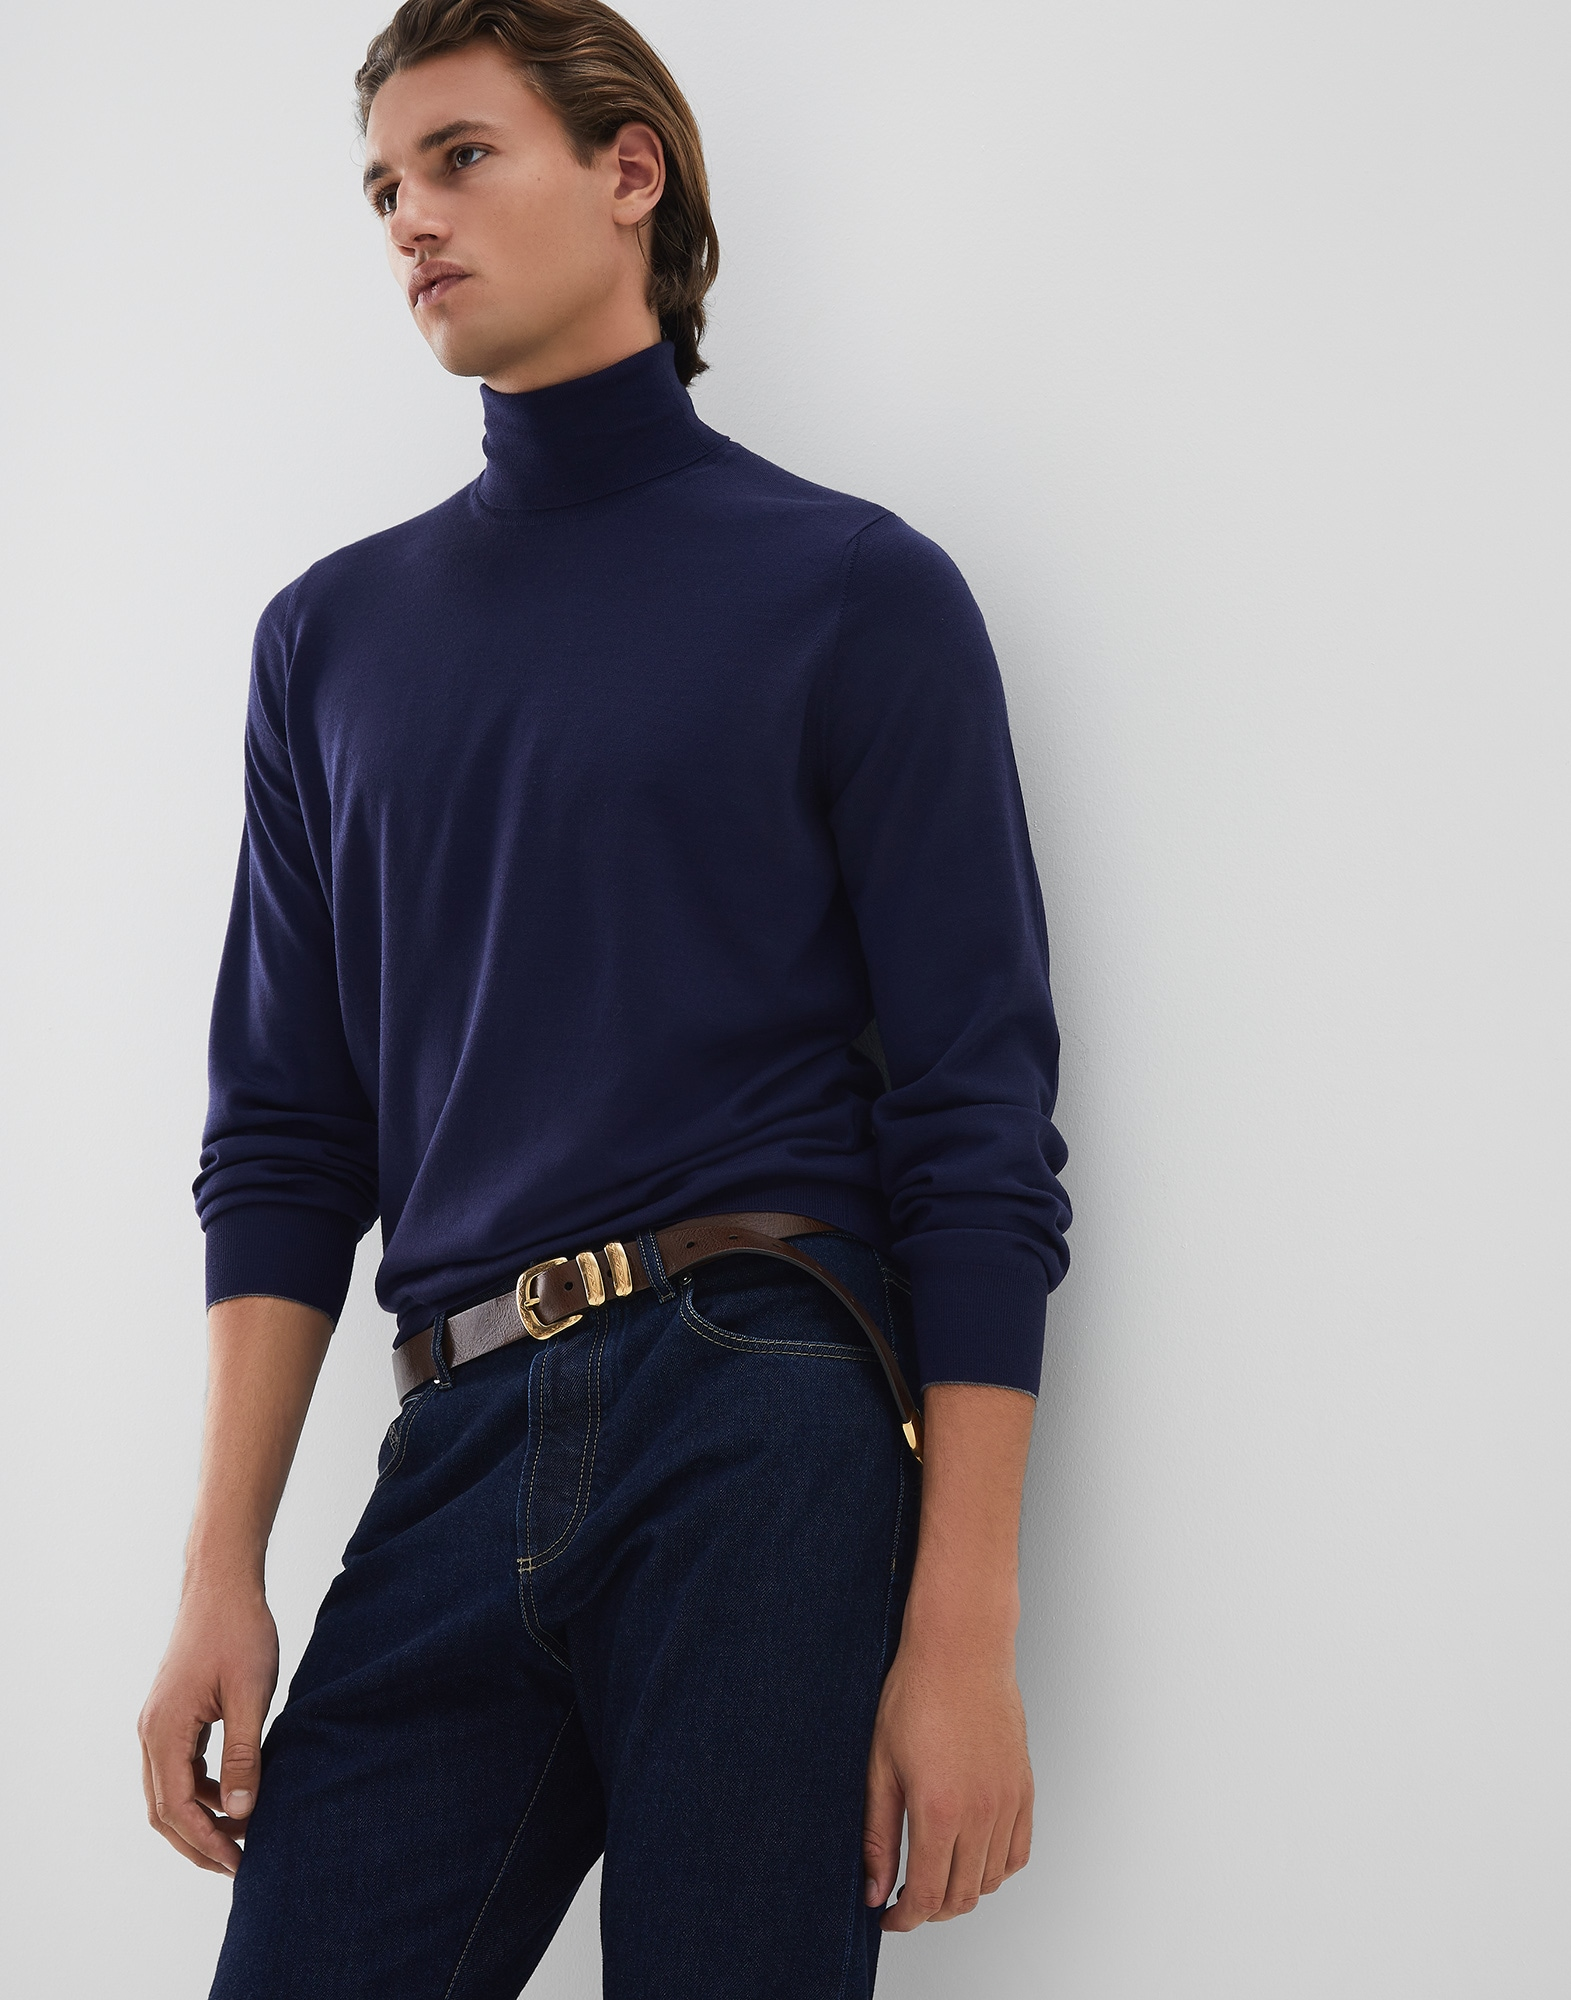 High Neck Sweater Blue Man 4 - Brunello Cucinelli